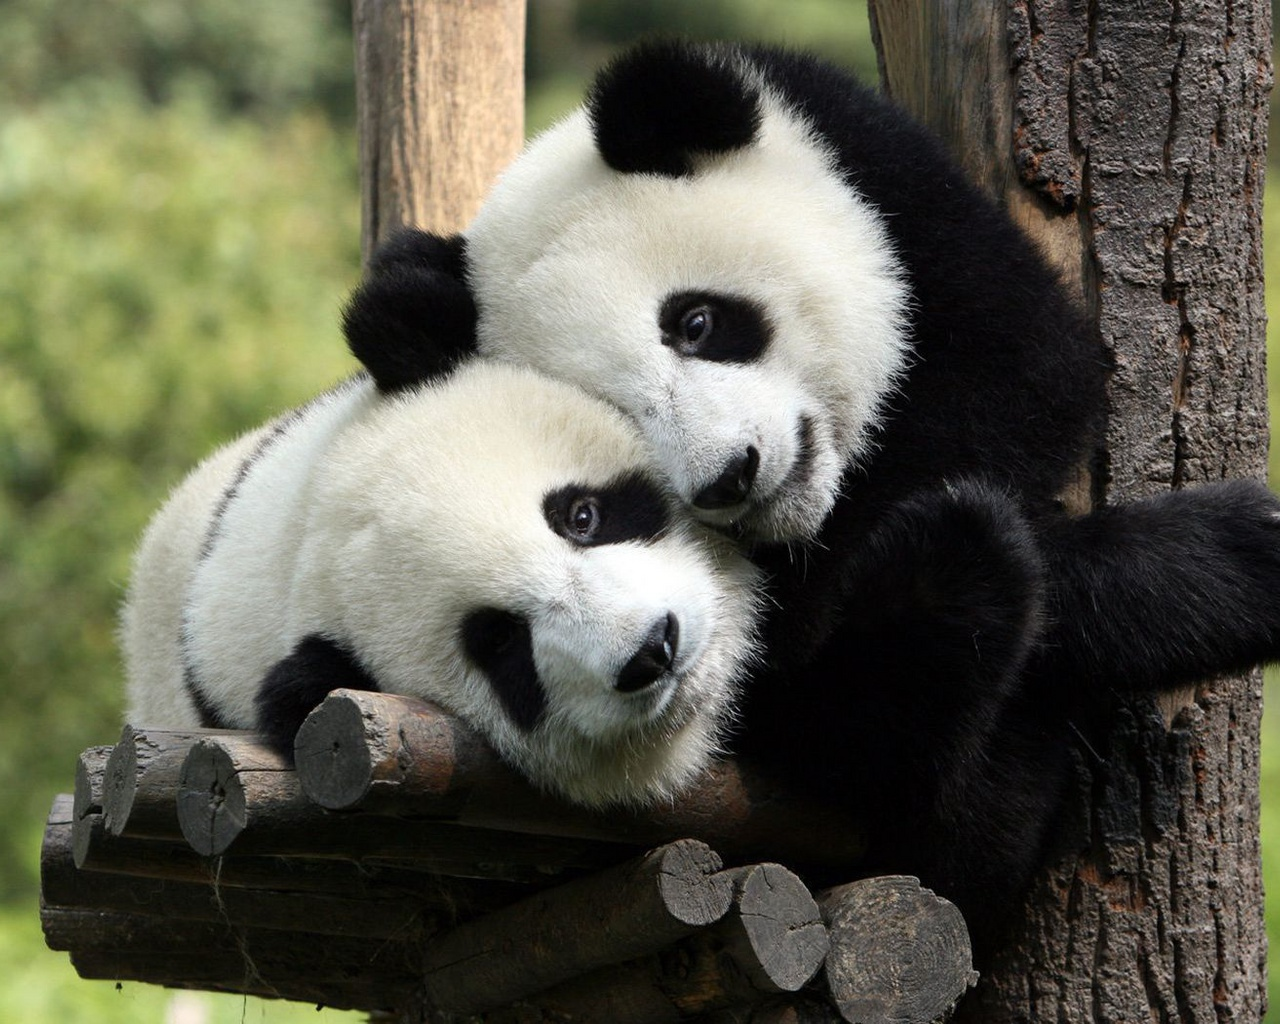 33480 download wallpaper Animals, Pandas screensavers and pictures for free